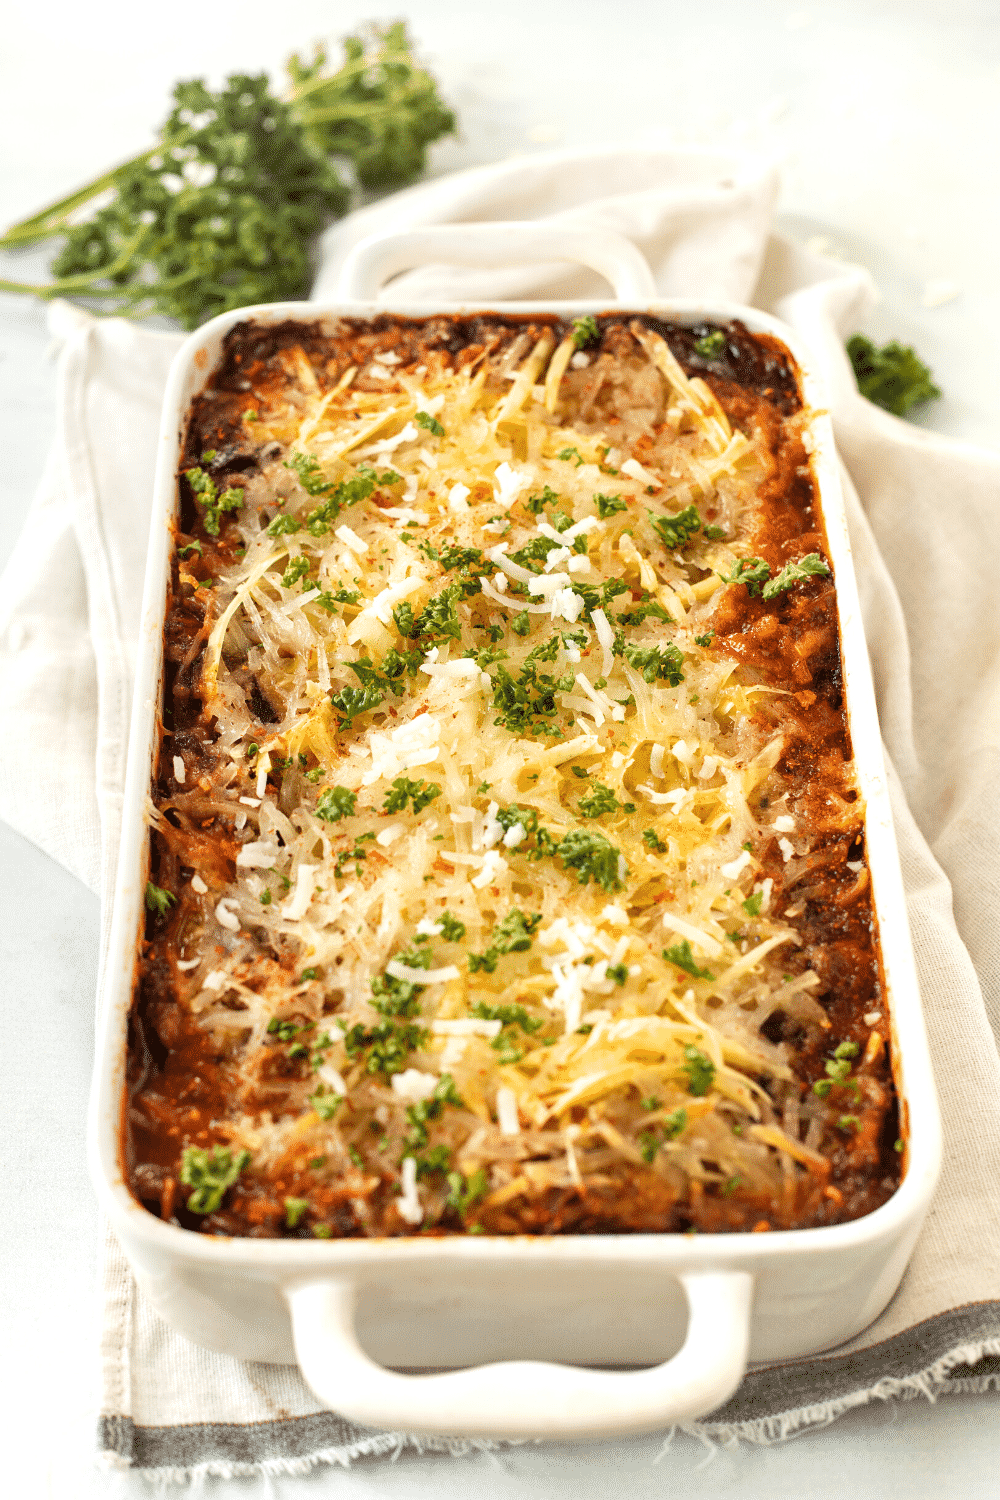 A white baking dish with vegan lasagna in it.